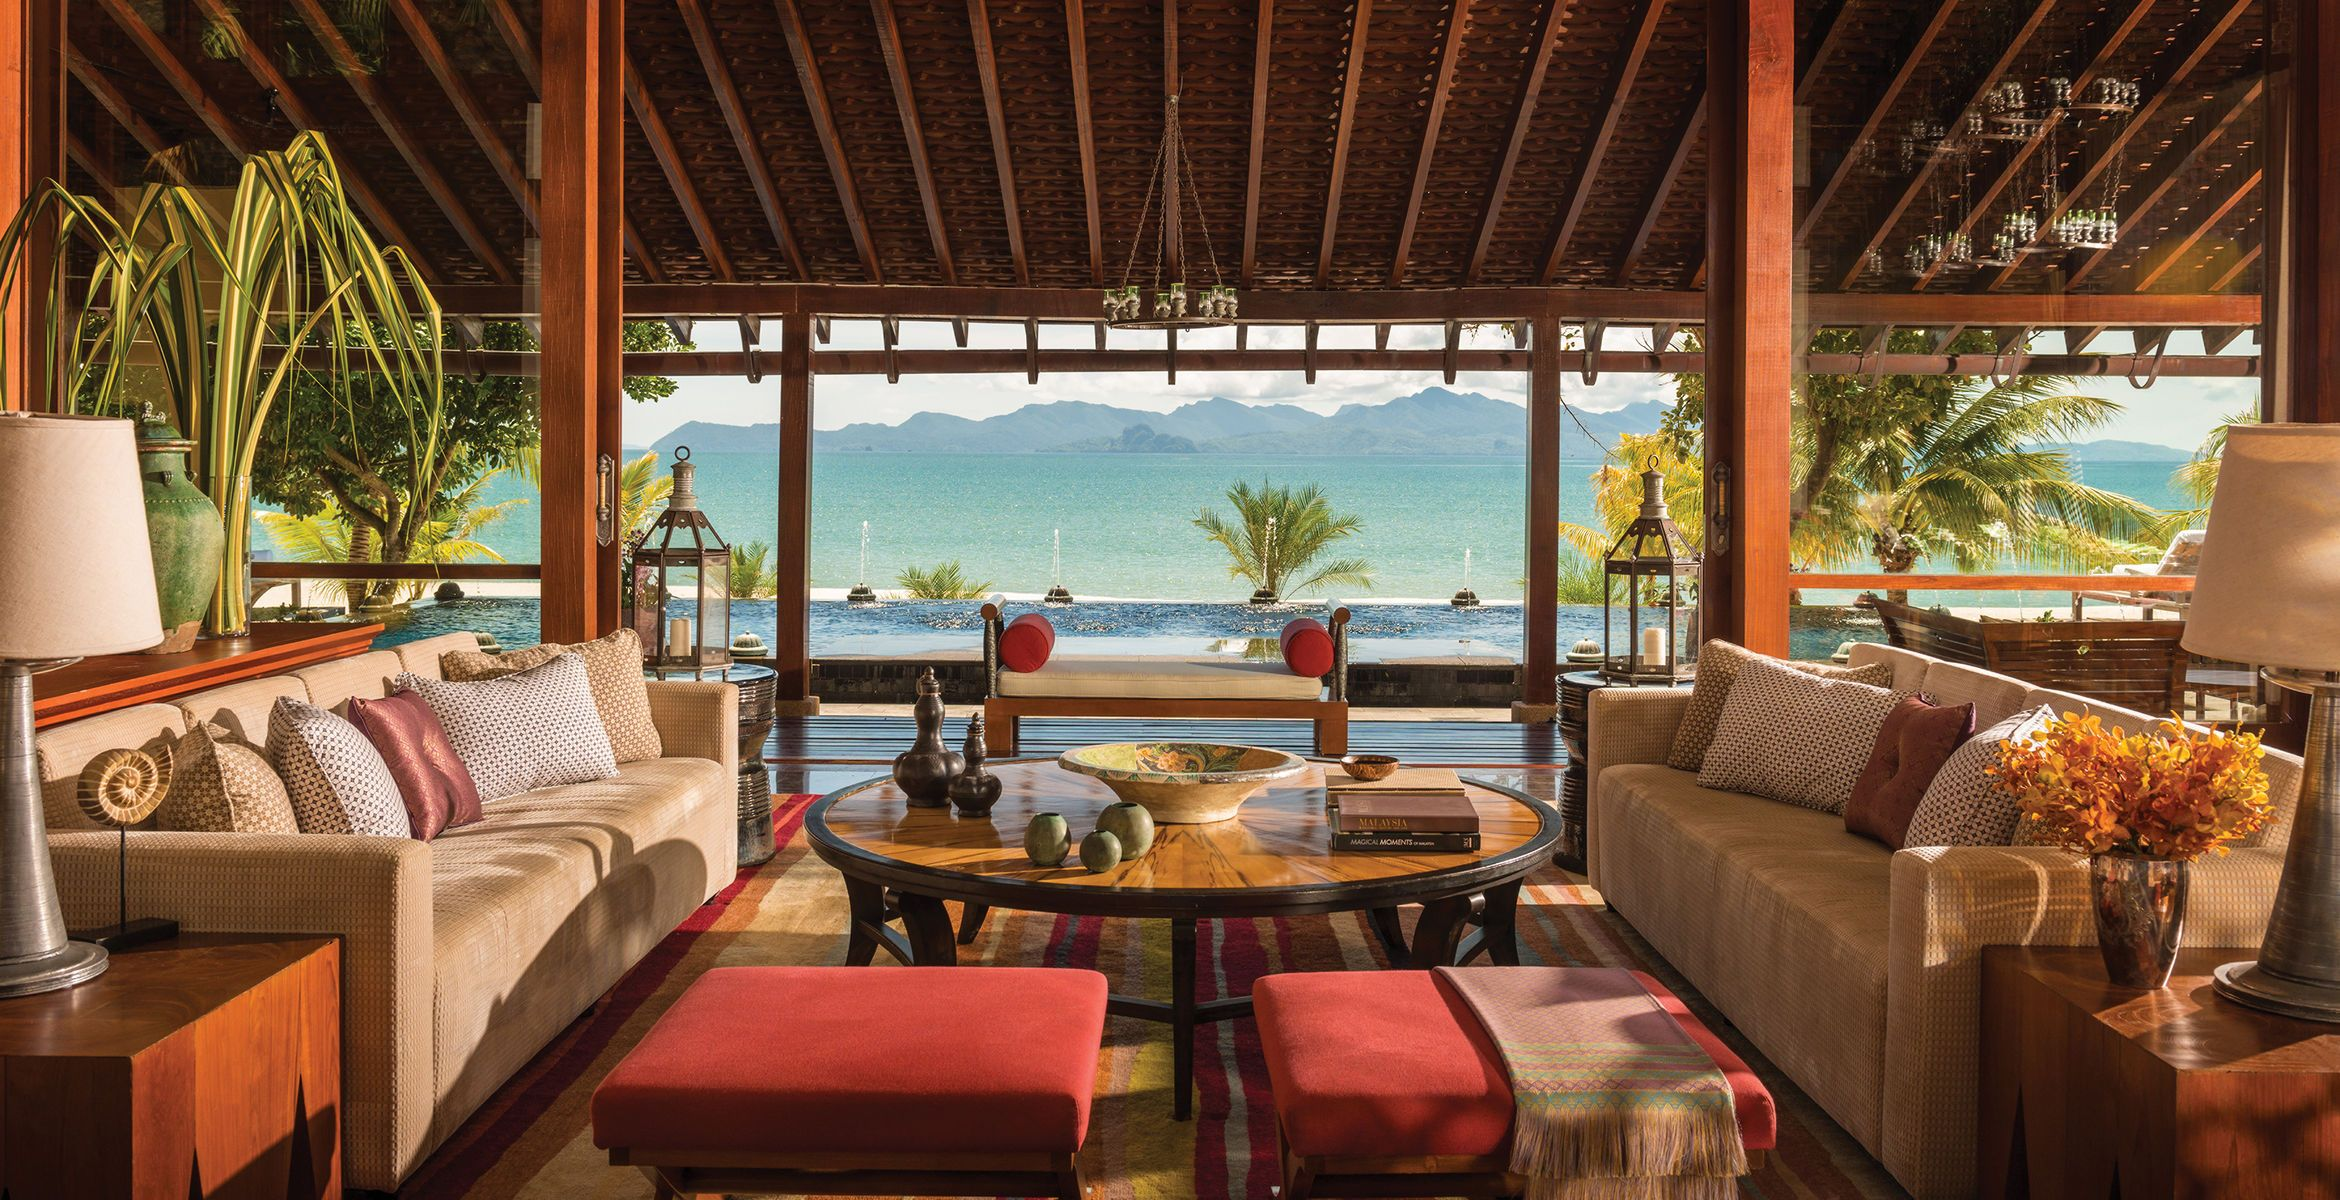 Tropical Living Room In Malaysia Ideas With Fireplace The Corner Four Seasons Resort Langkawi Tanjung Rhu Lounge Luxury Modern Chair Property Home Villa Cottage Restaurant